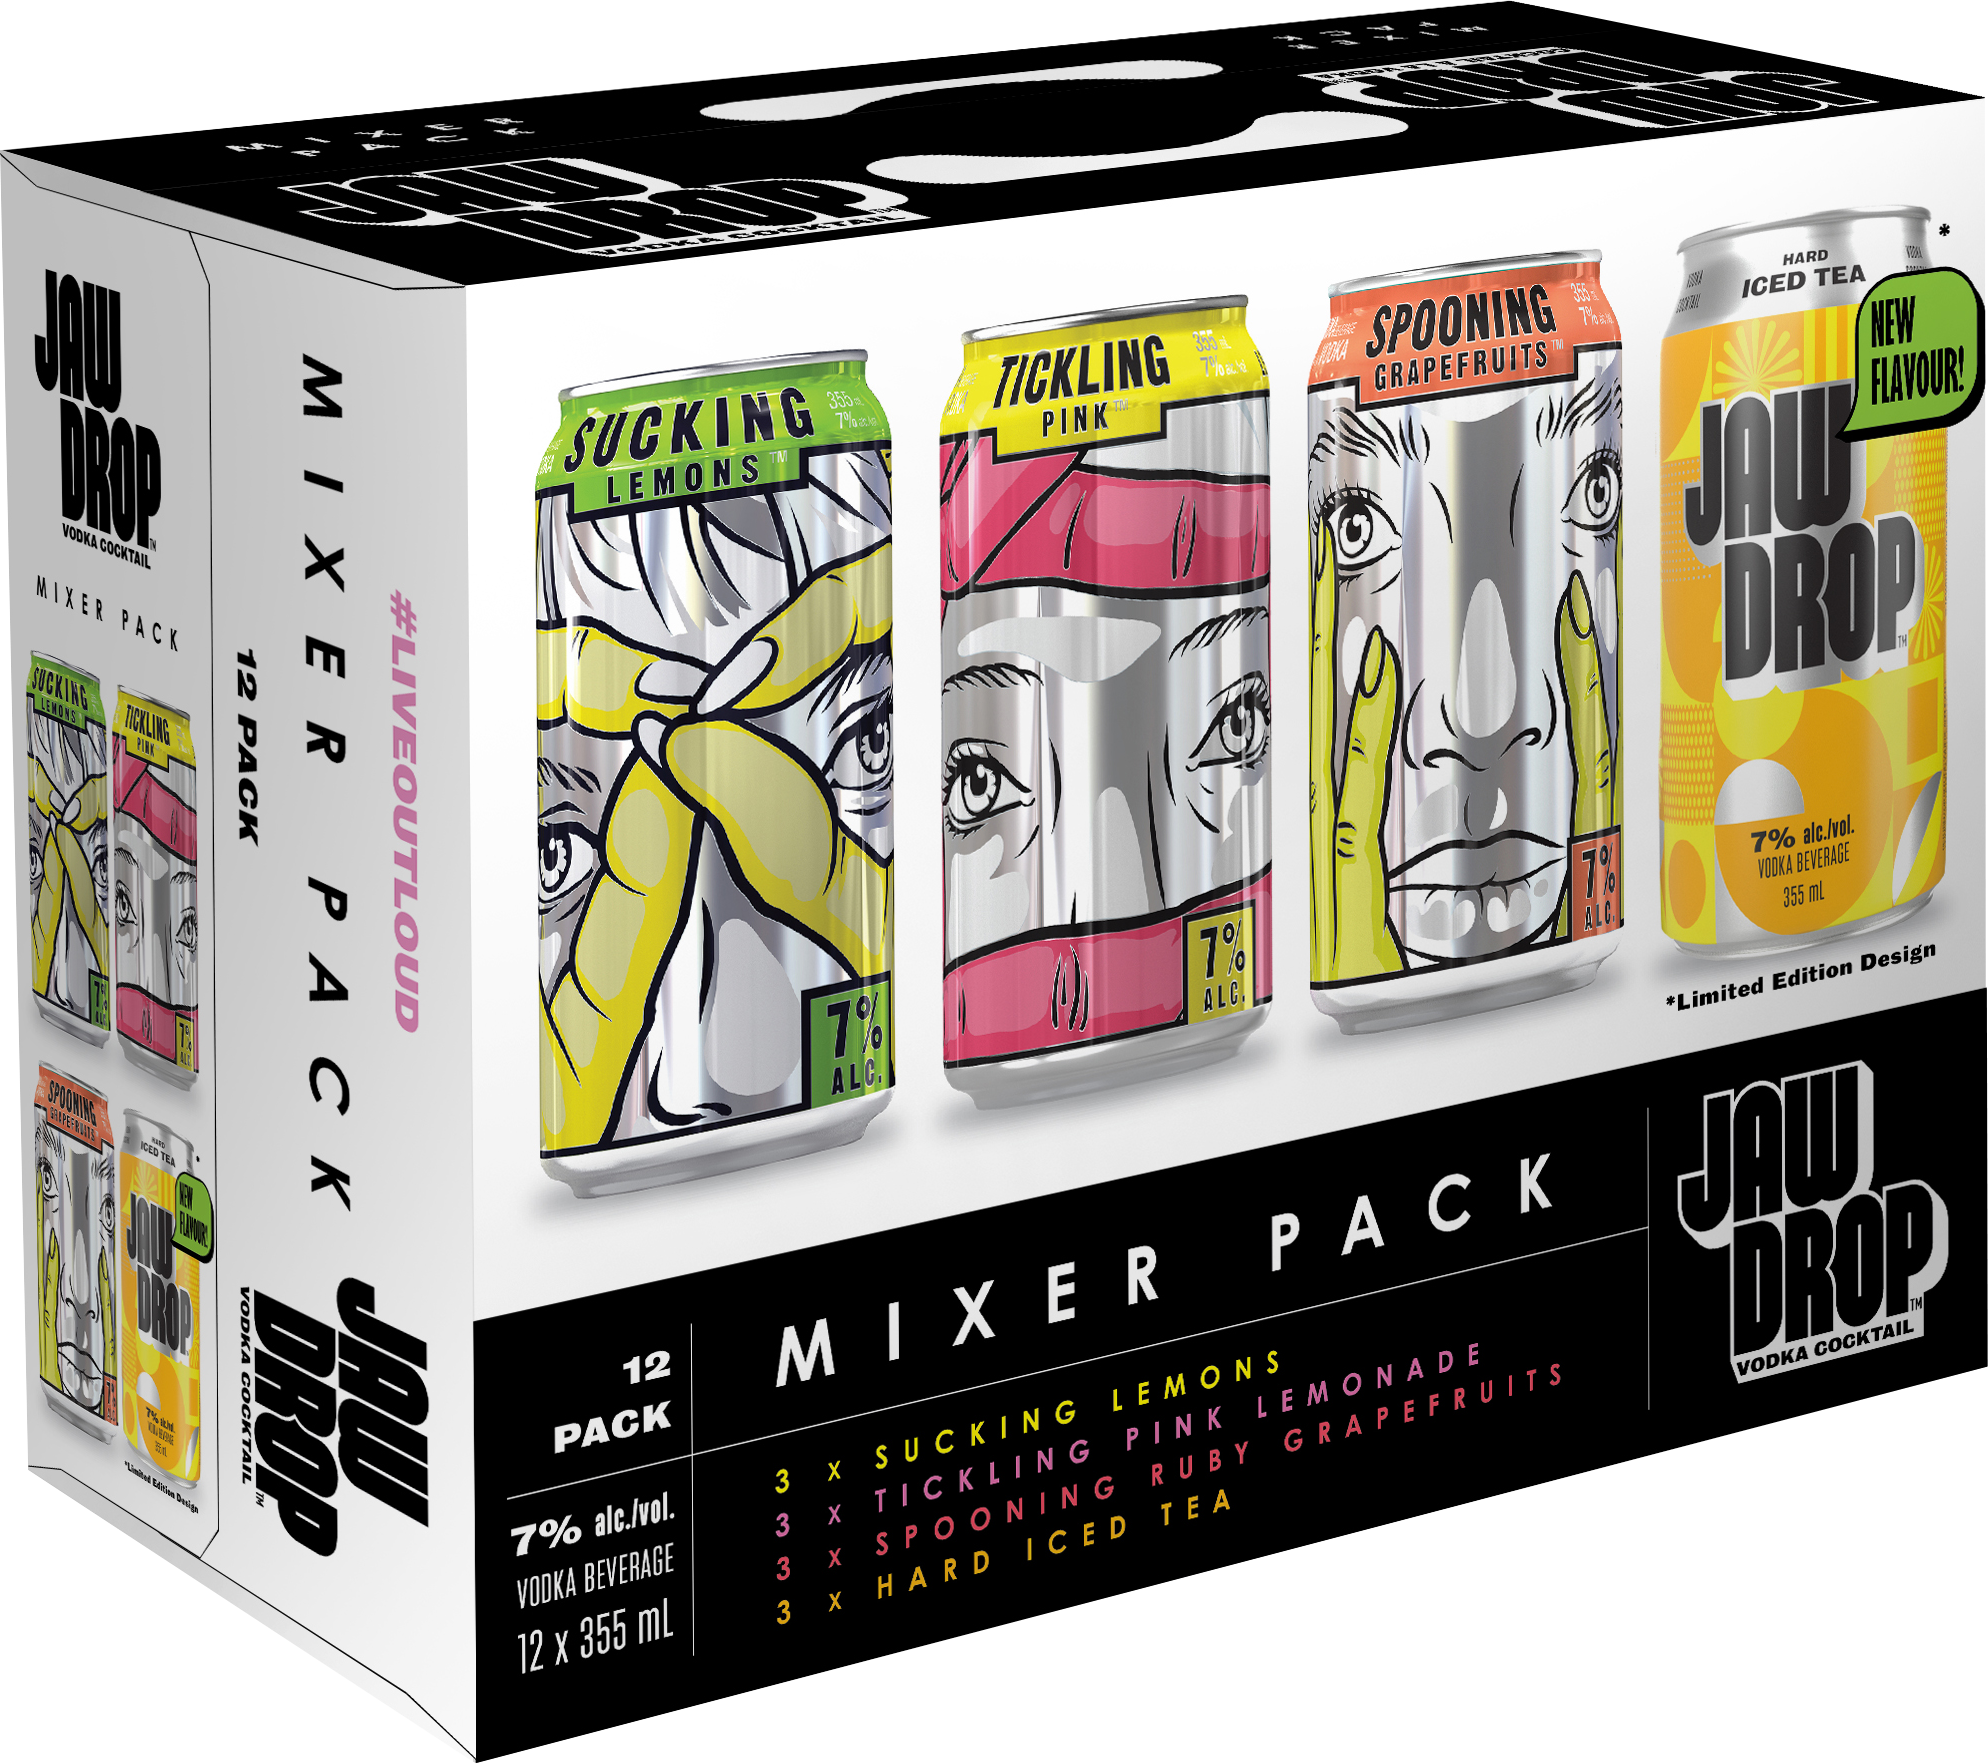 Jaw Drop Mixer Pack